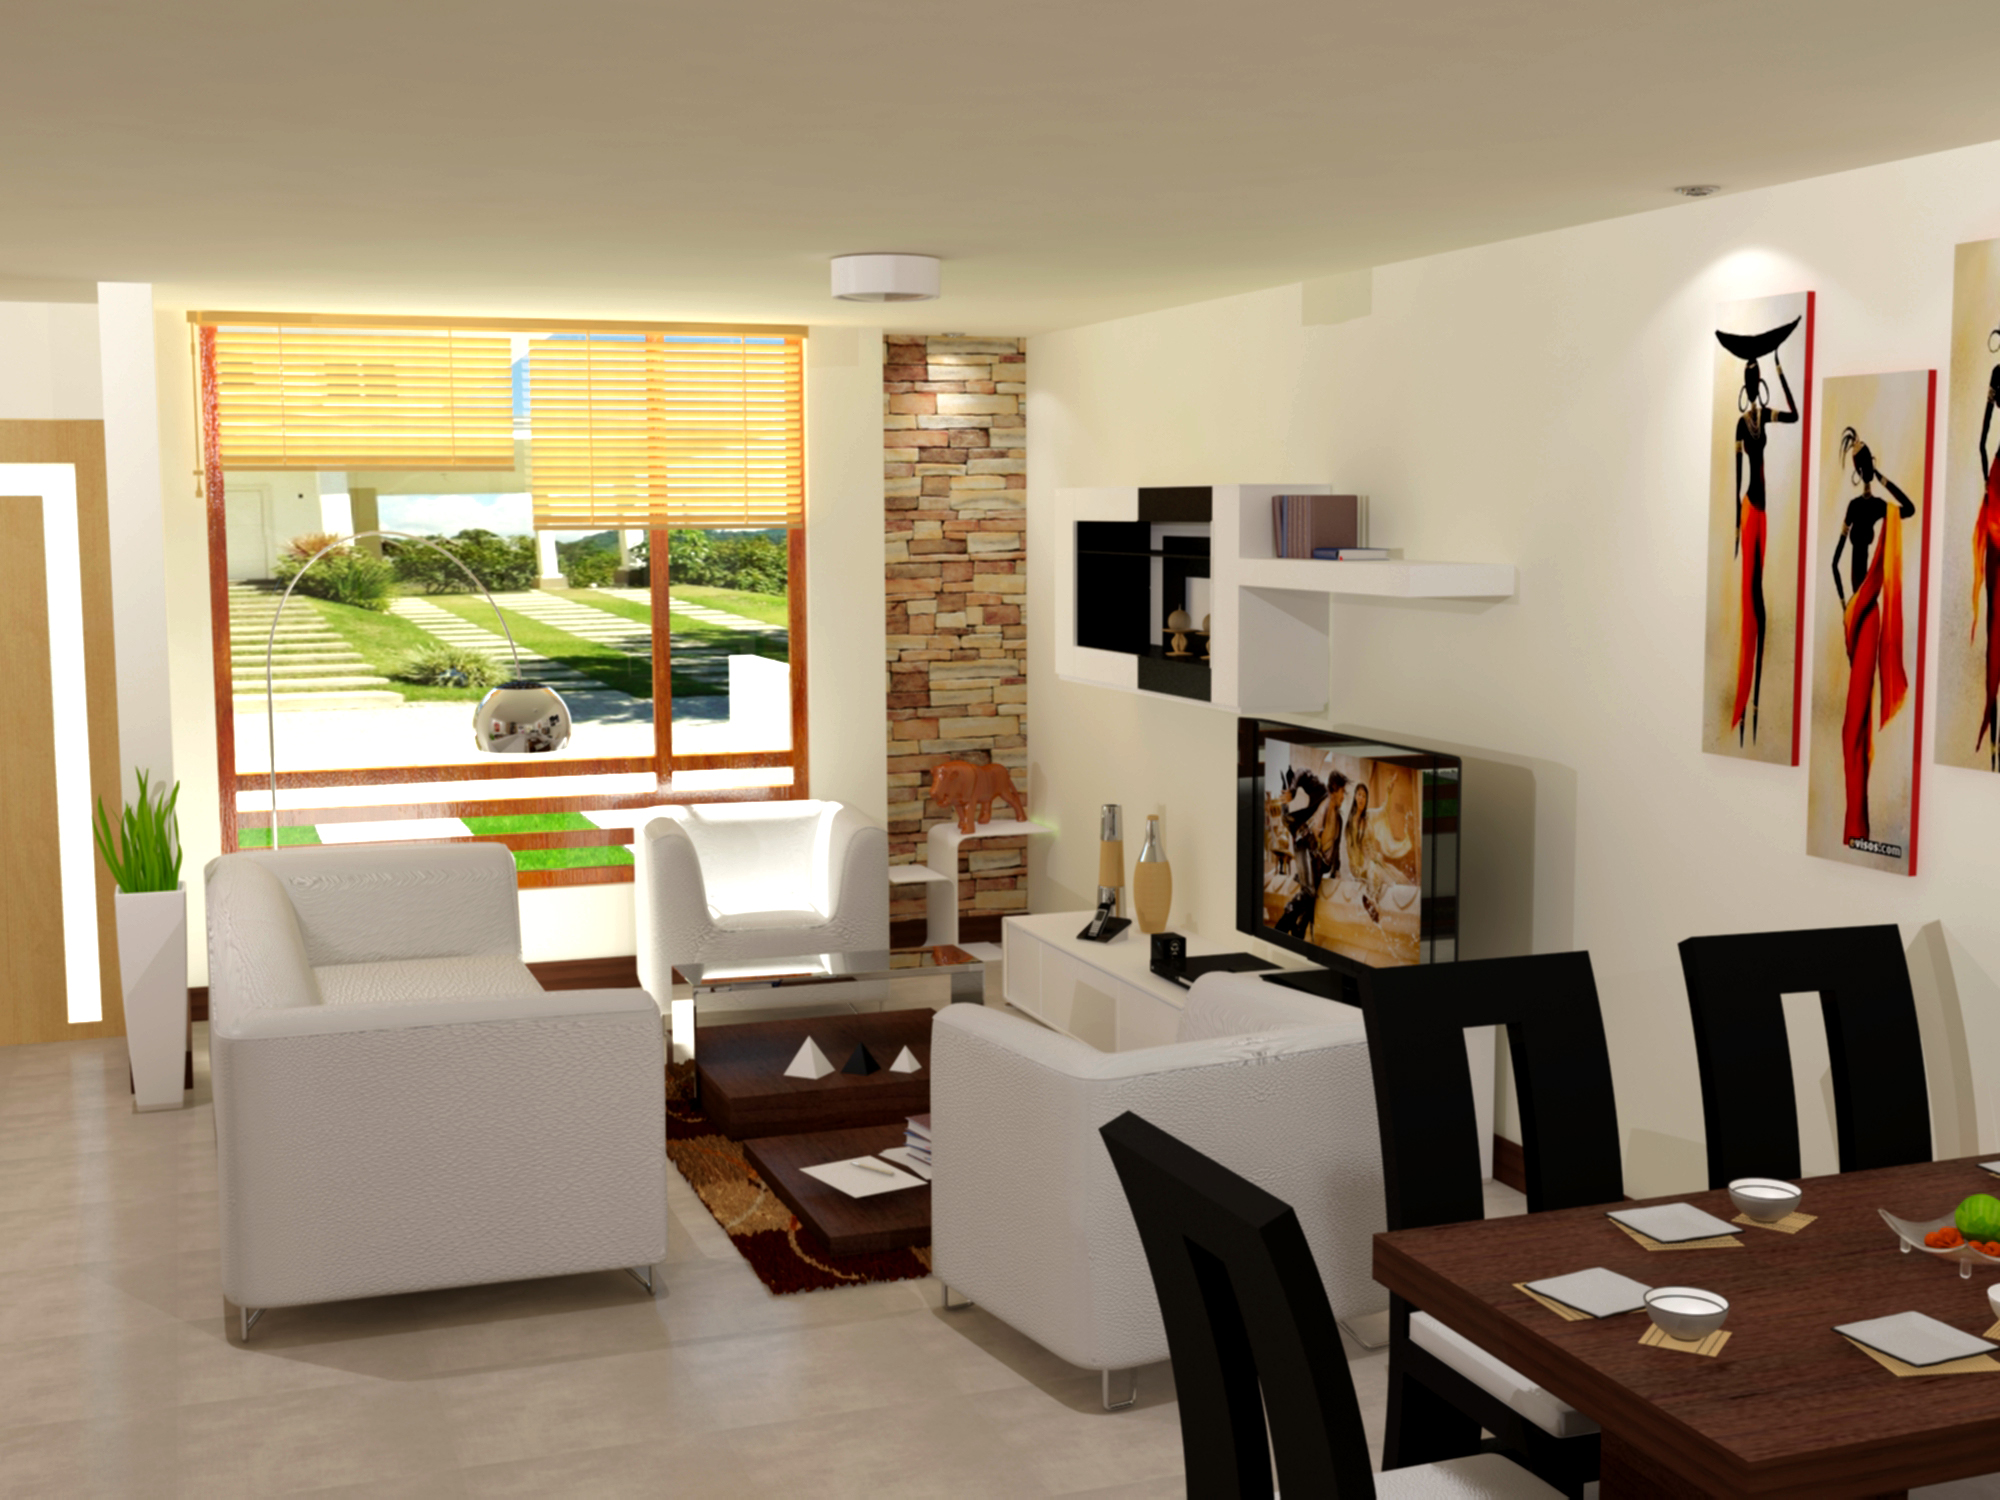 Como decorar una casa innovadoras ideas para ti for Casa namu diseno decoracion